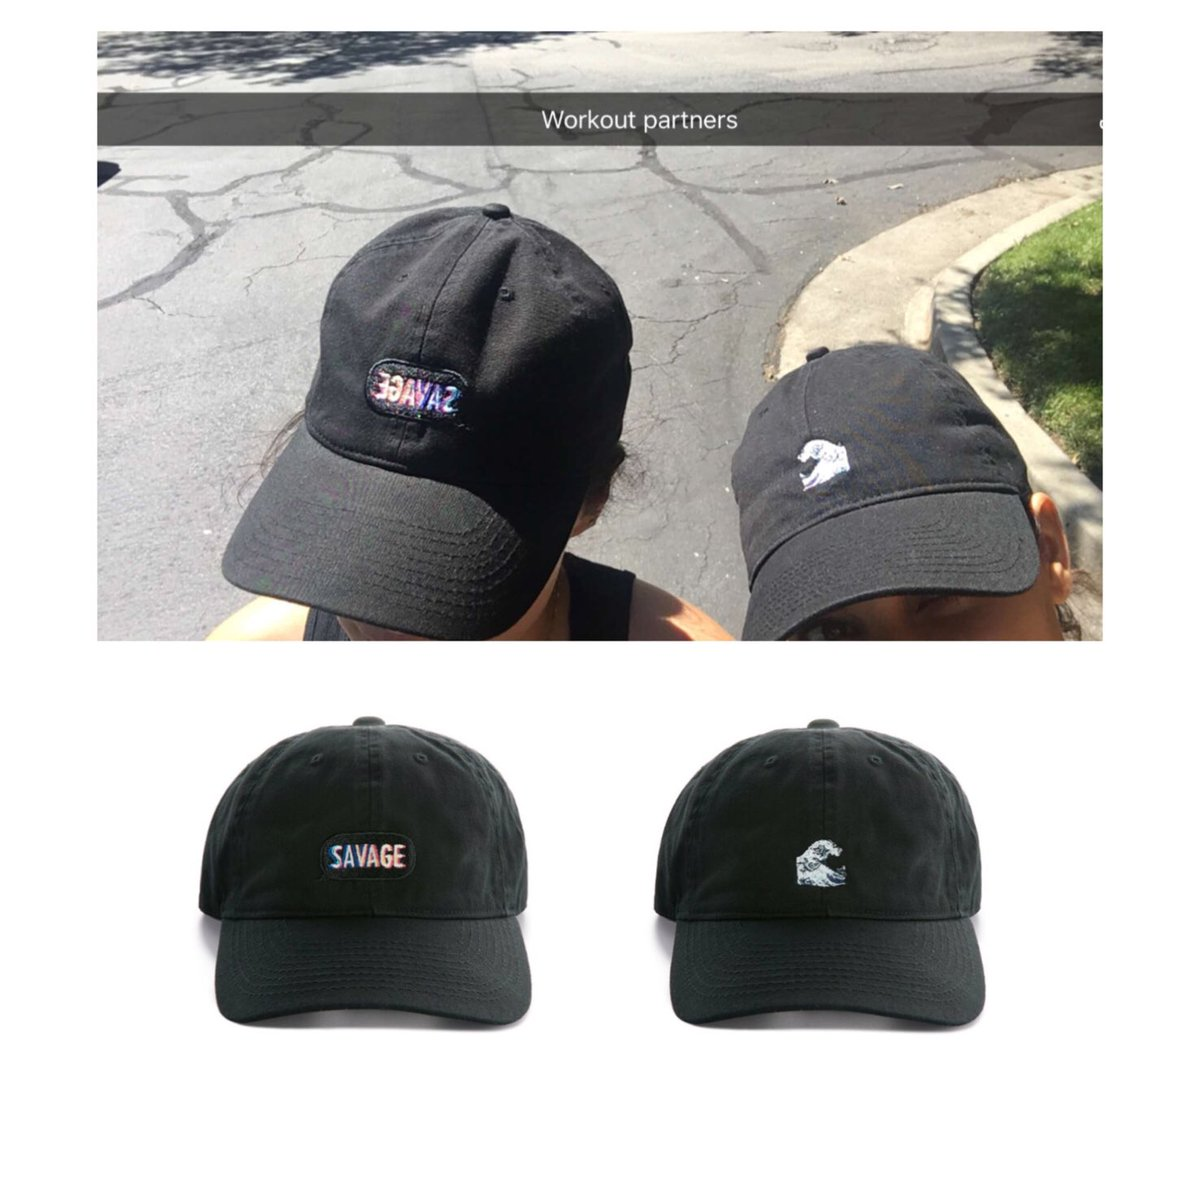 9619ae6f2b3  steph shep    KimKardashian wearing their  KimojiMerch dad caps today. Now  available on https   t.co Qqdt4Cn7lT htt…